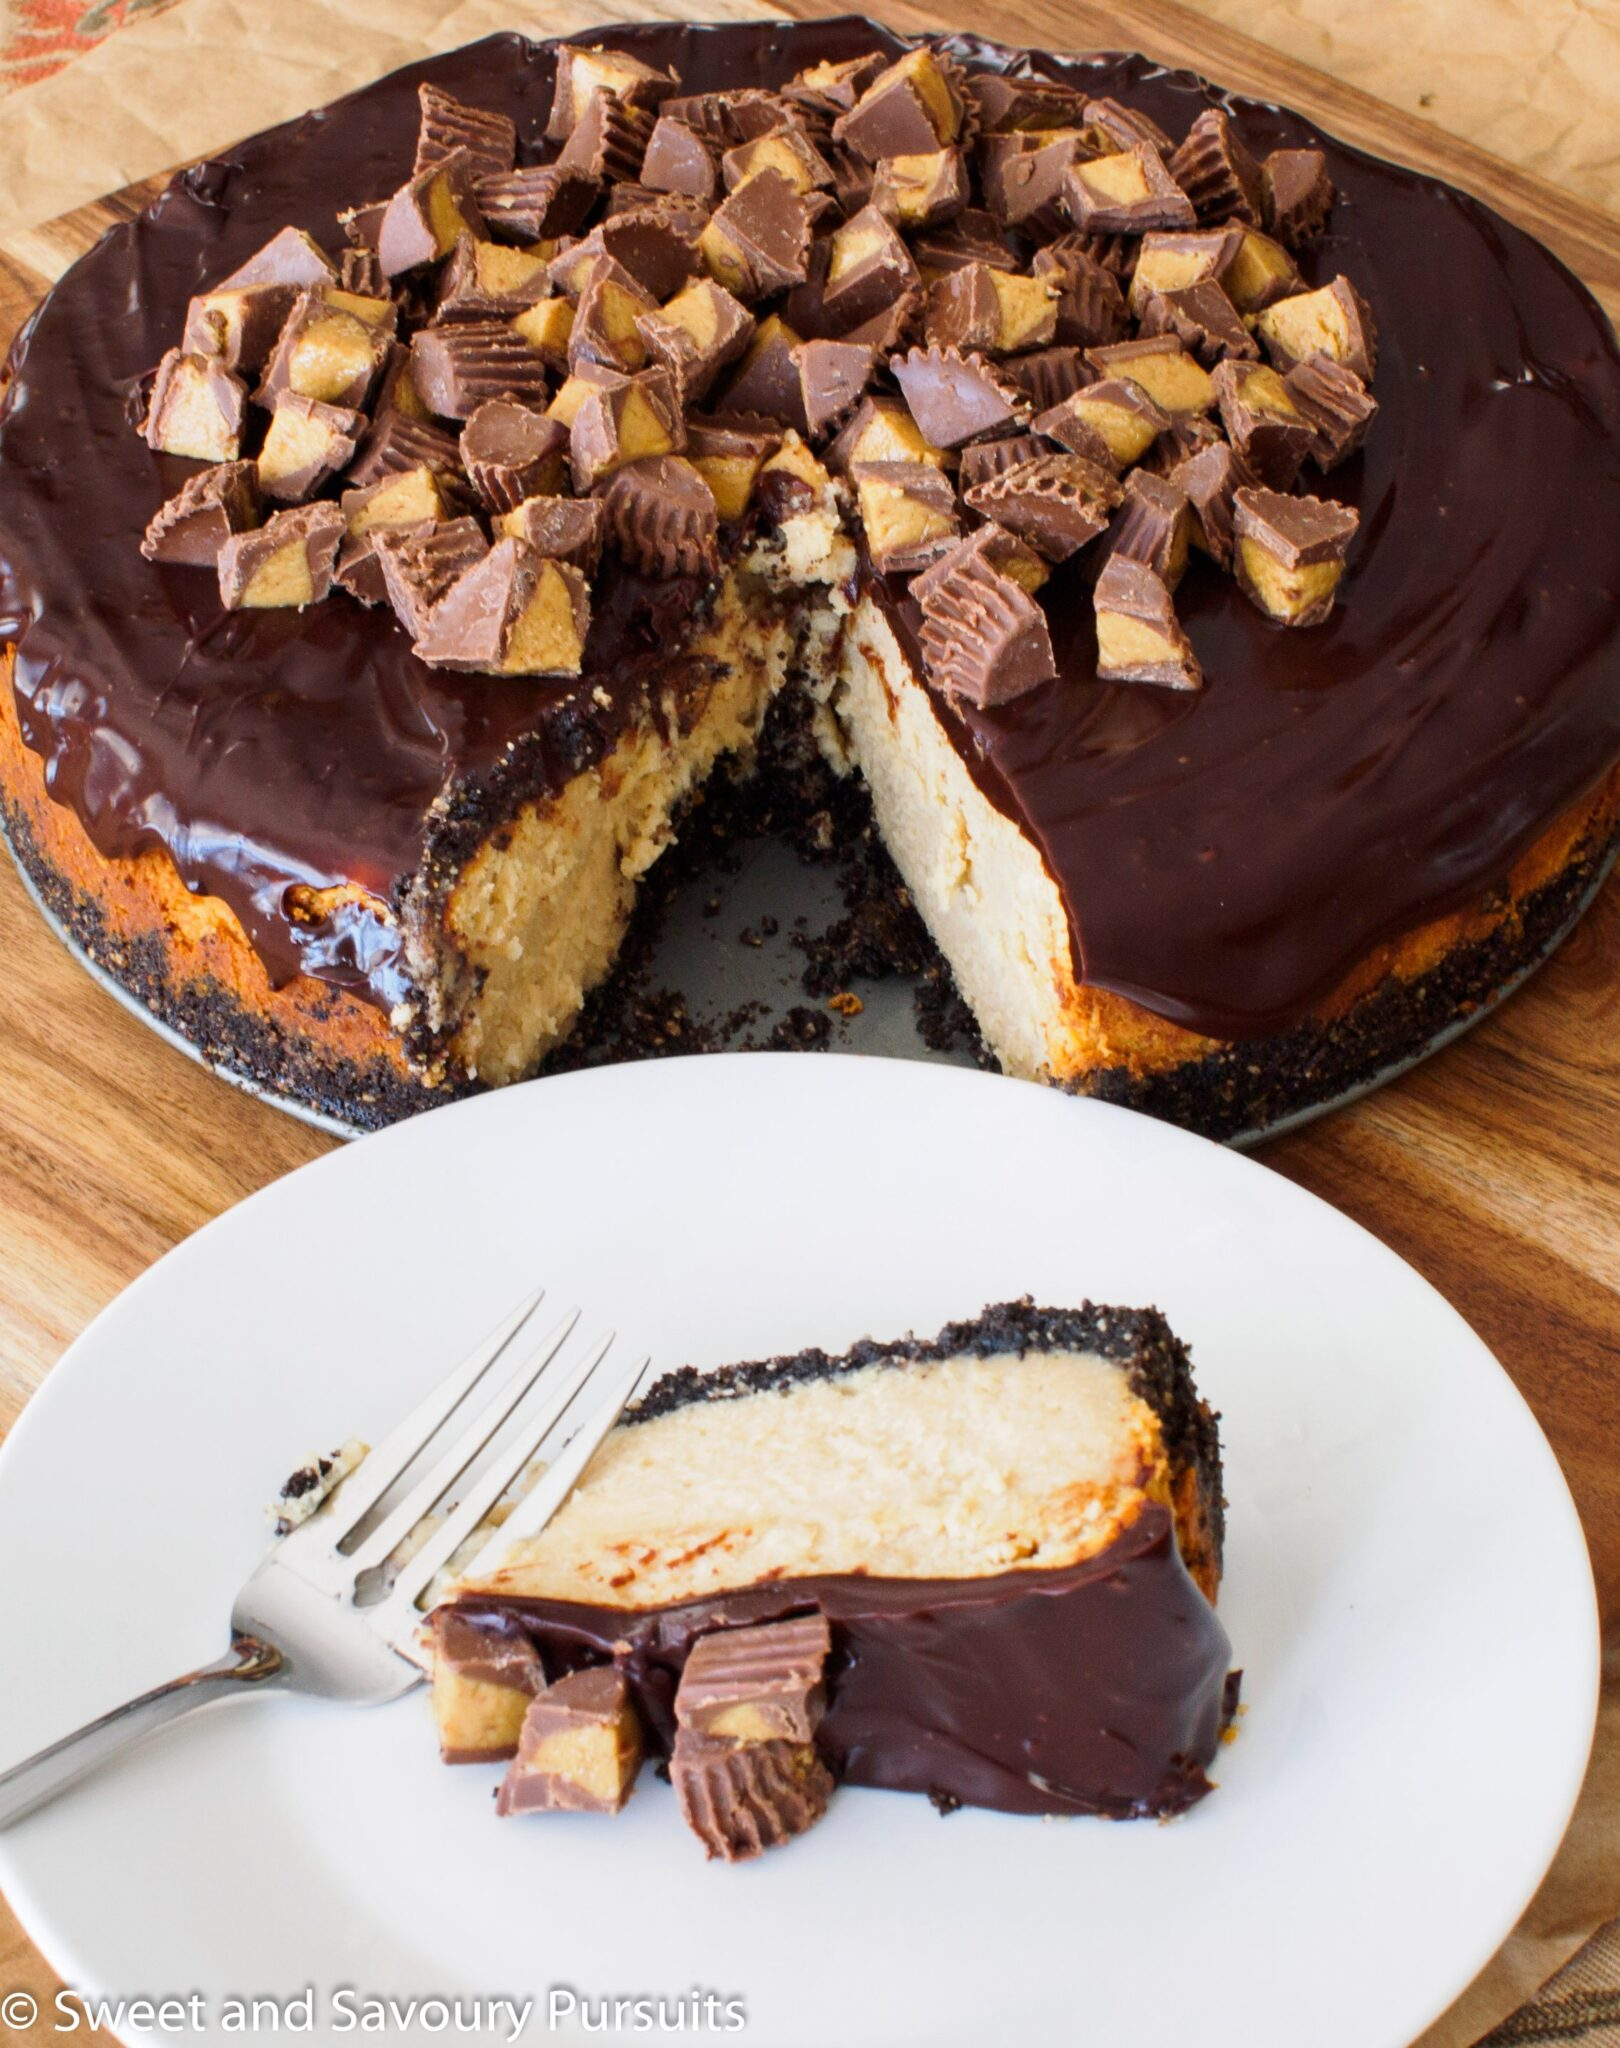 Slice of Peanut Butter and Chocolate Cheesecake on dish.